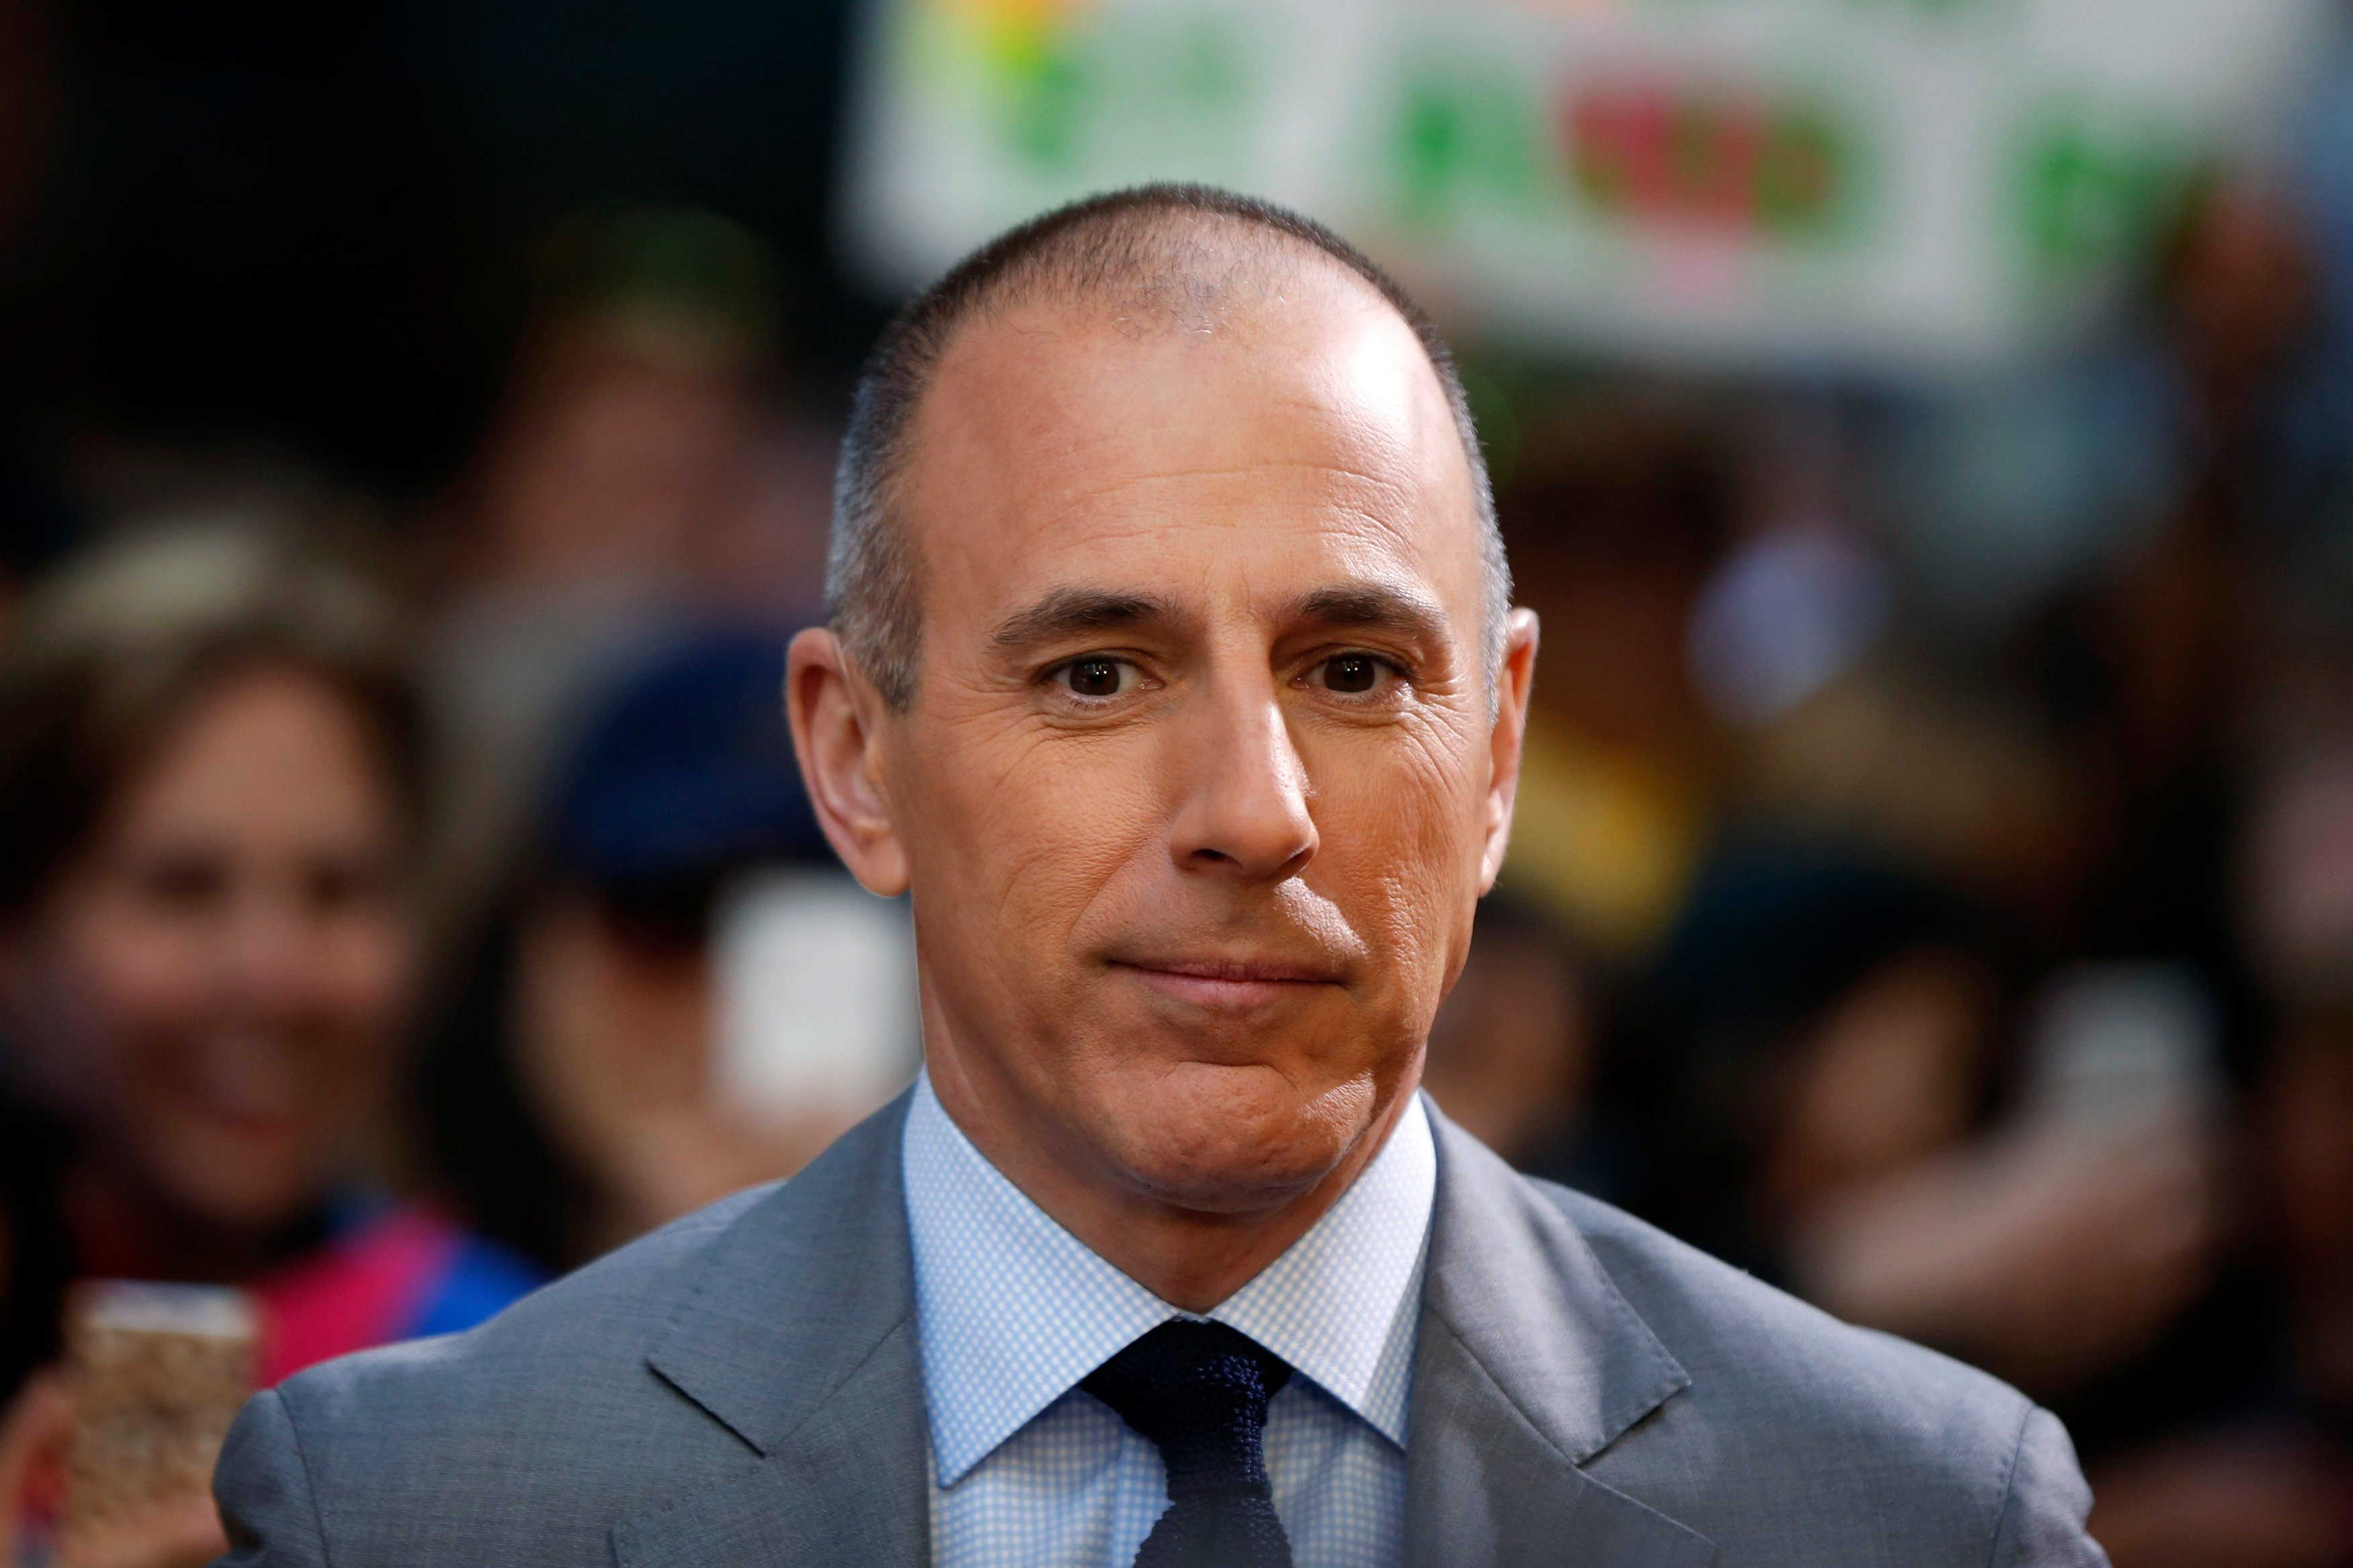 When Matt Lauer has been in the news lately its been largely about real estate either the Hamptons home he was forced out of in the wake of reports of